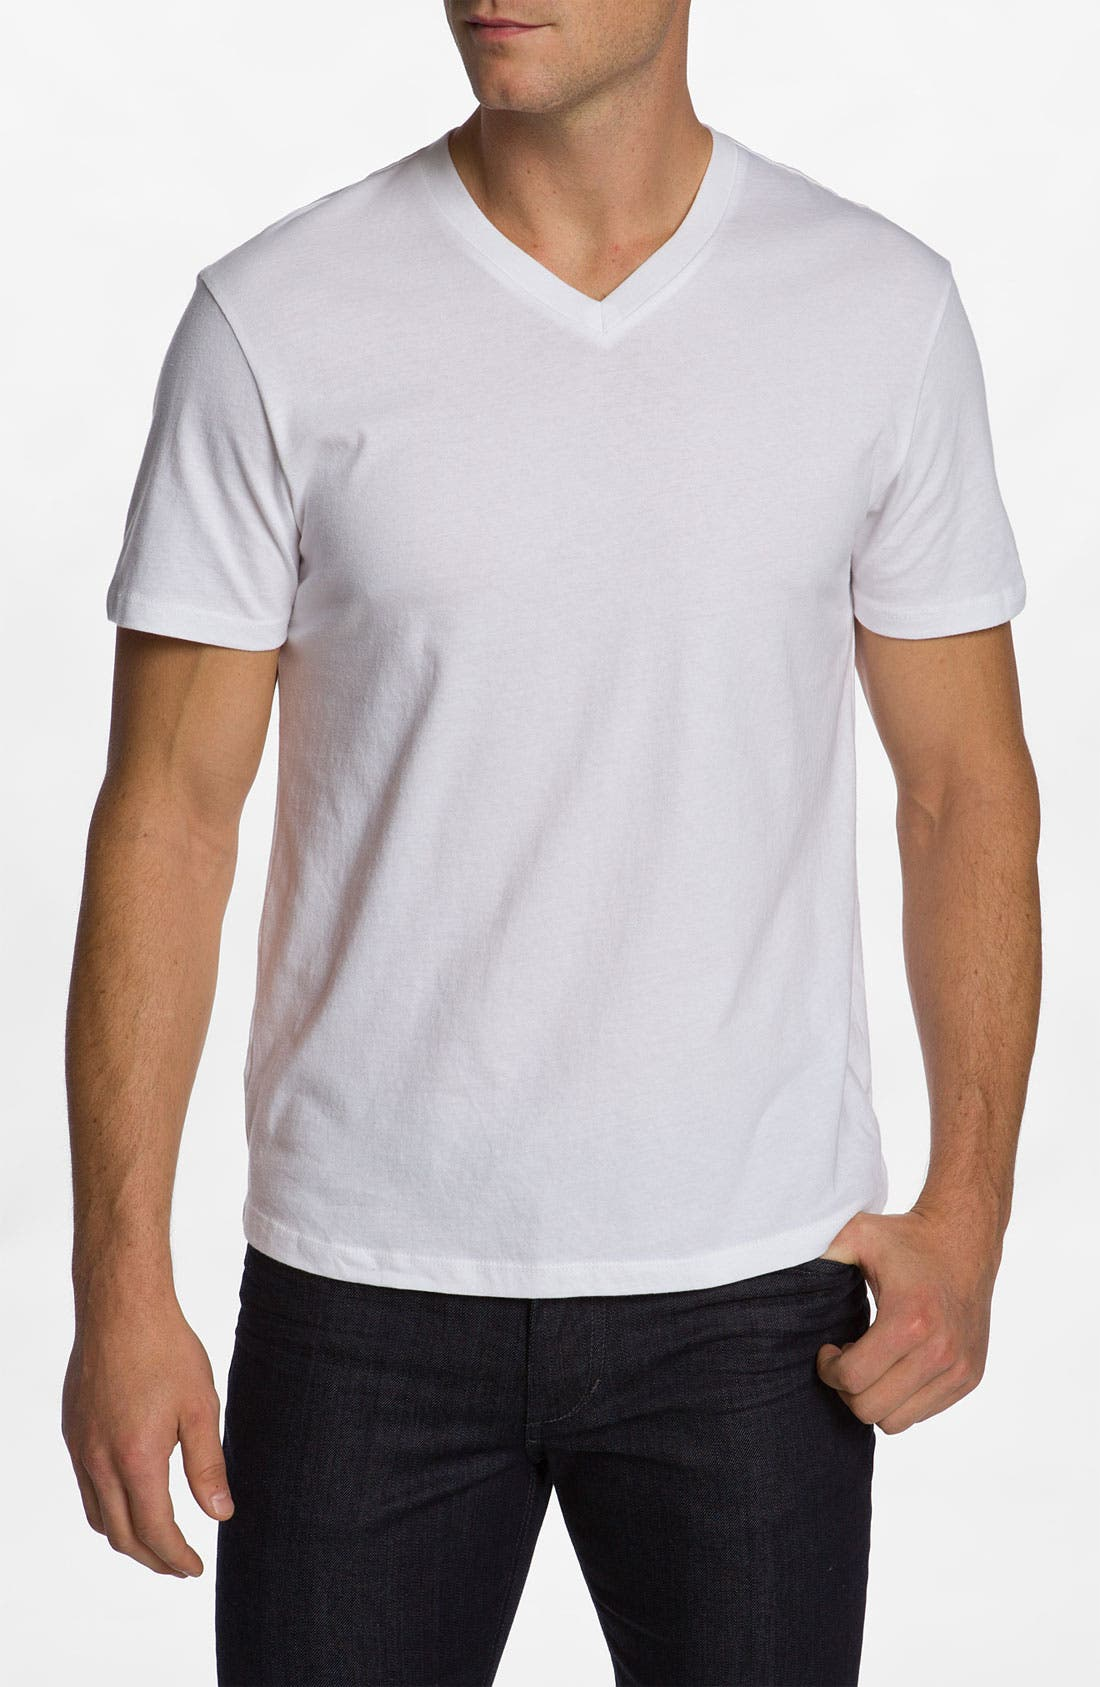 Main Image - The Rail Slim Fit V-Neck T-Shirt (2 for $30)